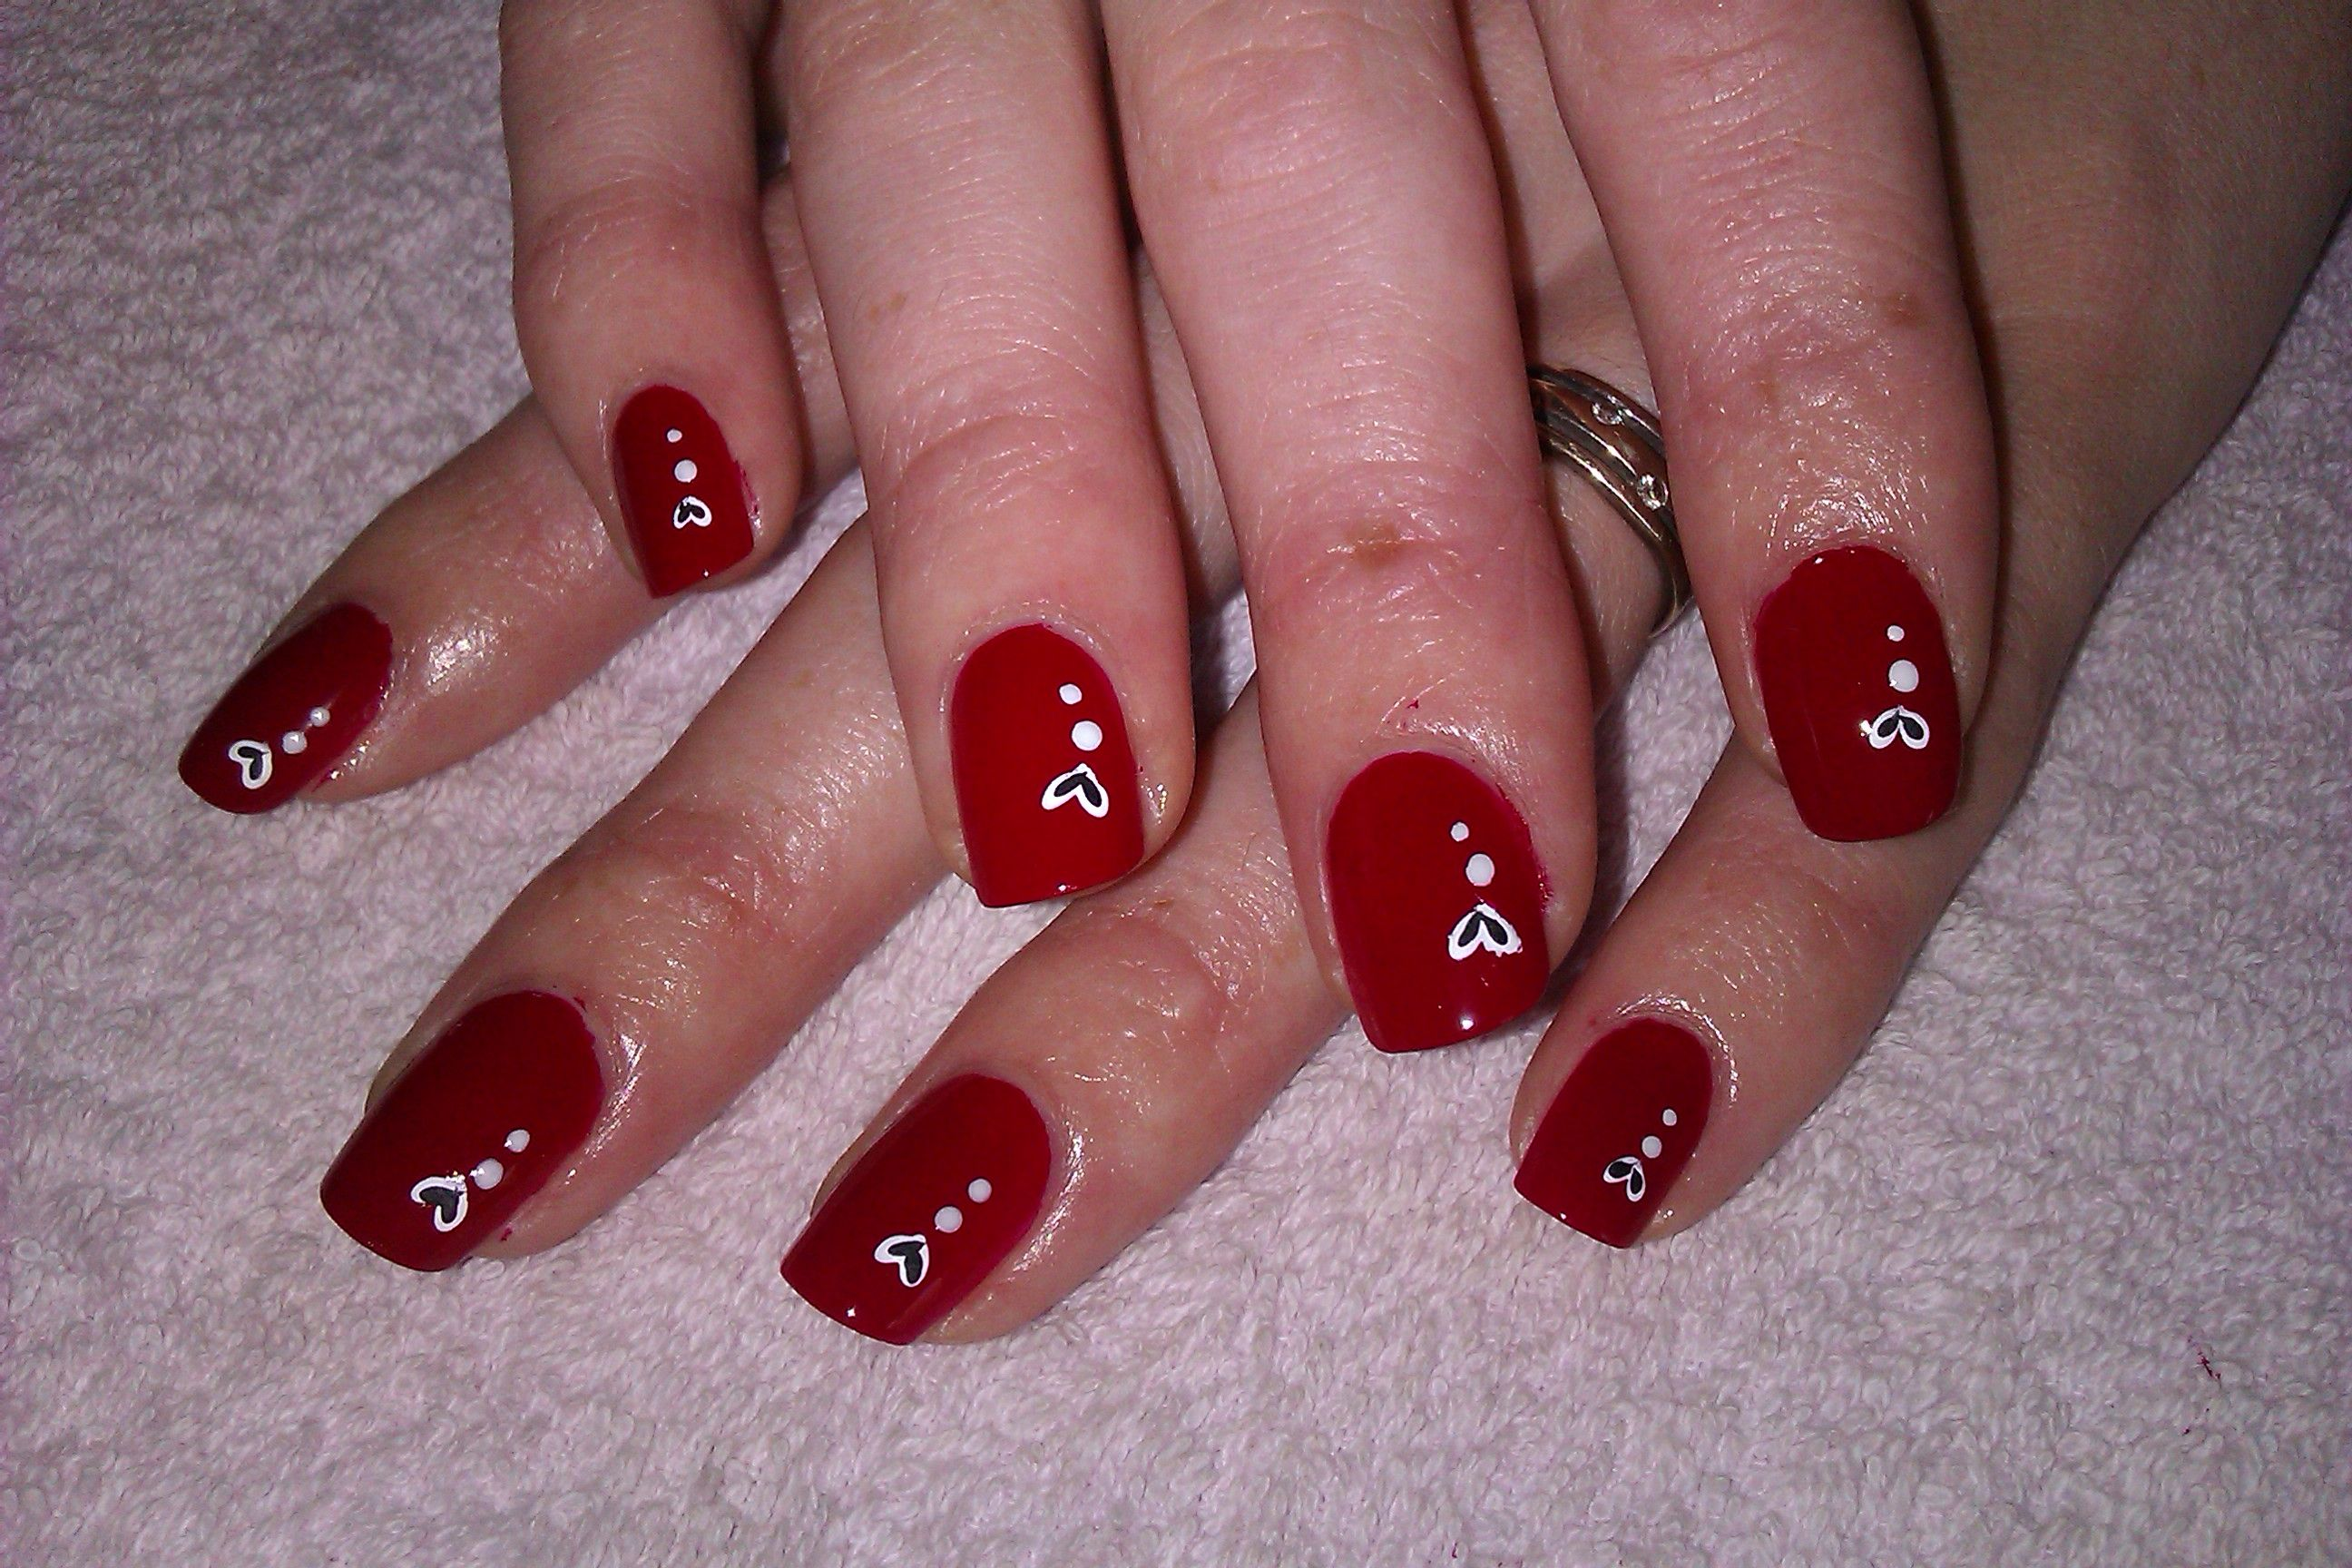 Pictures Of Nail Art Designs Diy Nail Art Designs Fiery Red